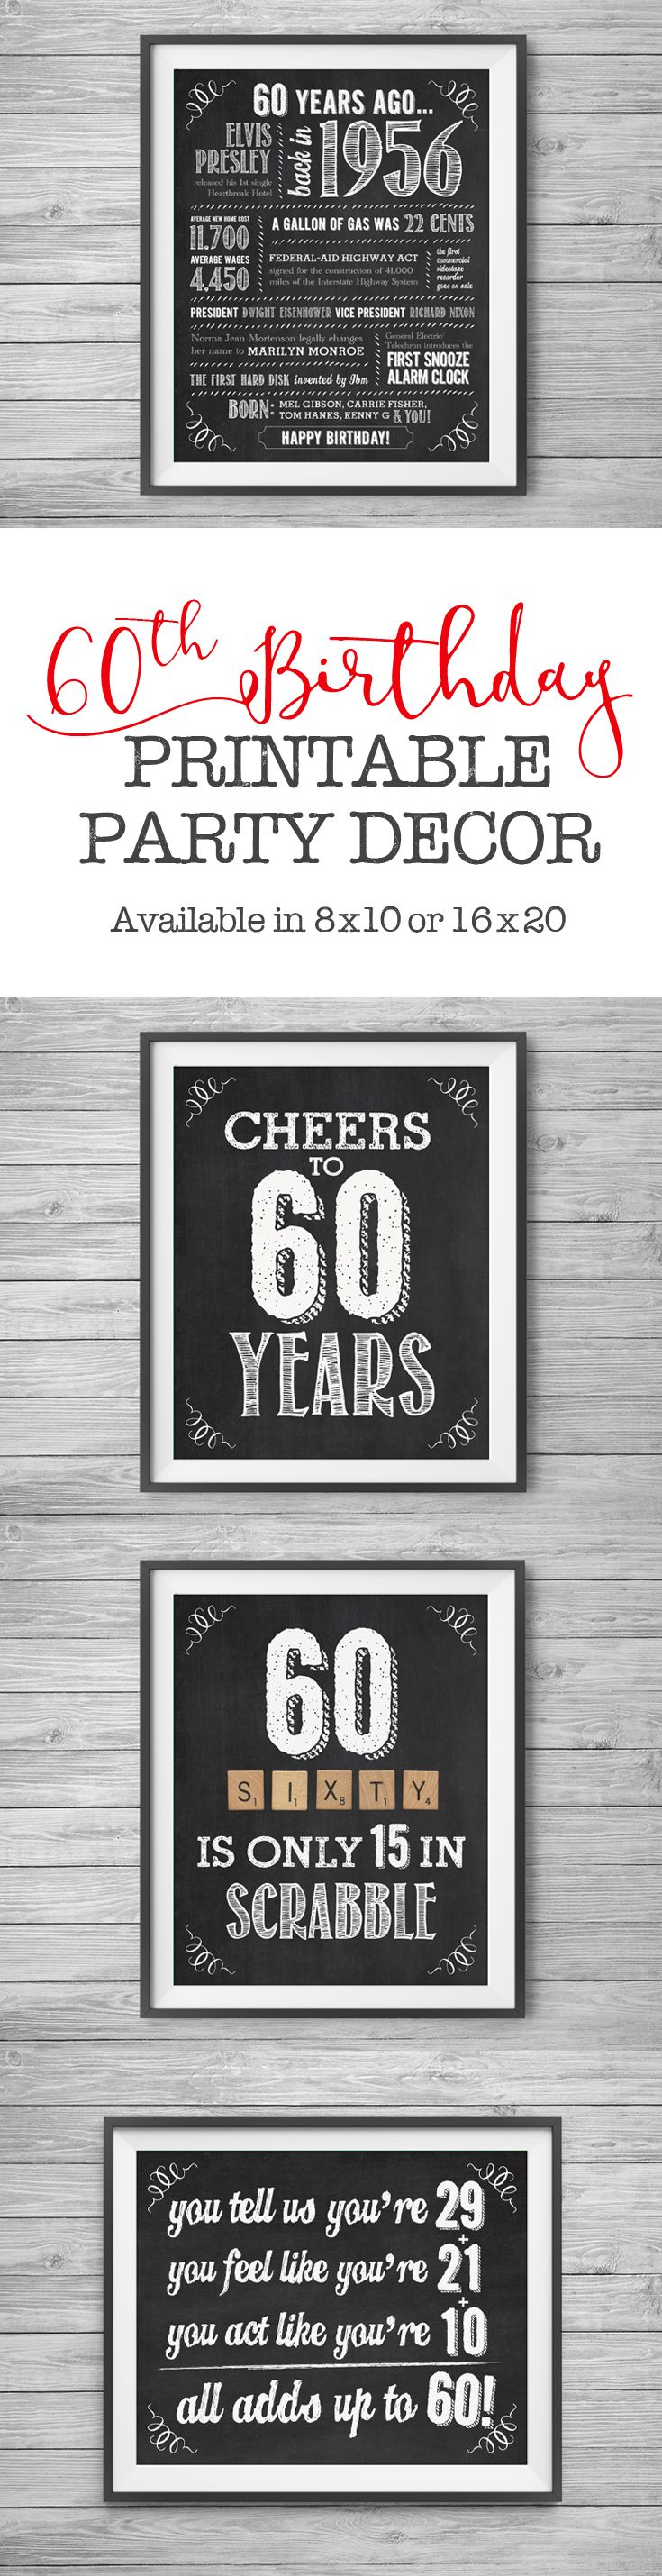 60th Birthday Printable Party Decor Supplies 4 Unique 8x10 Chalk